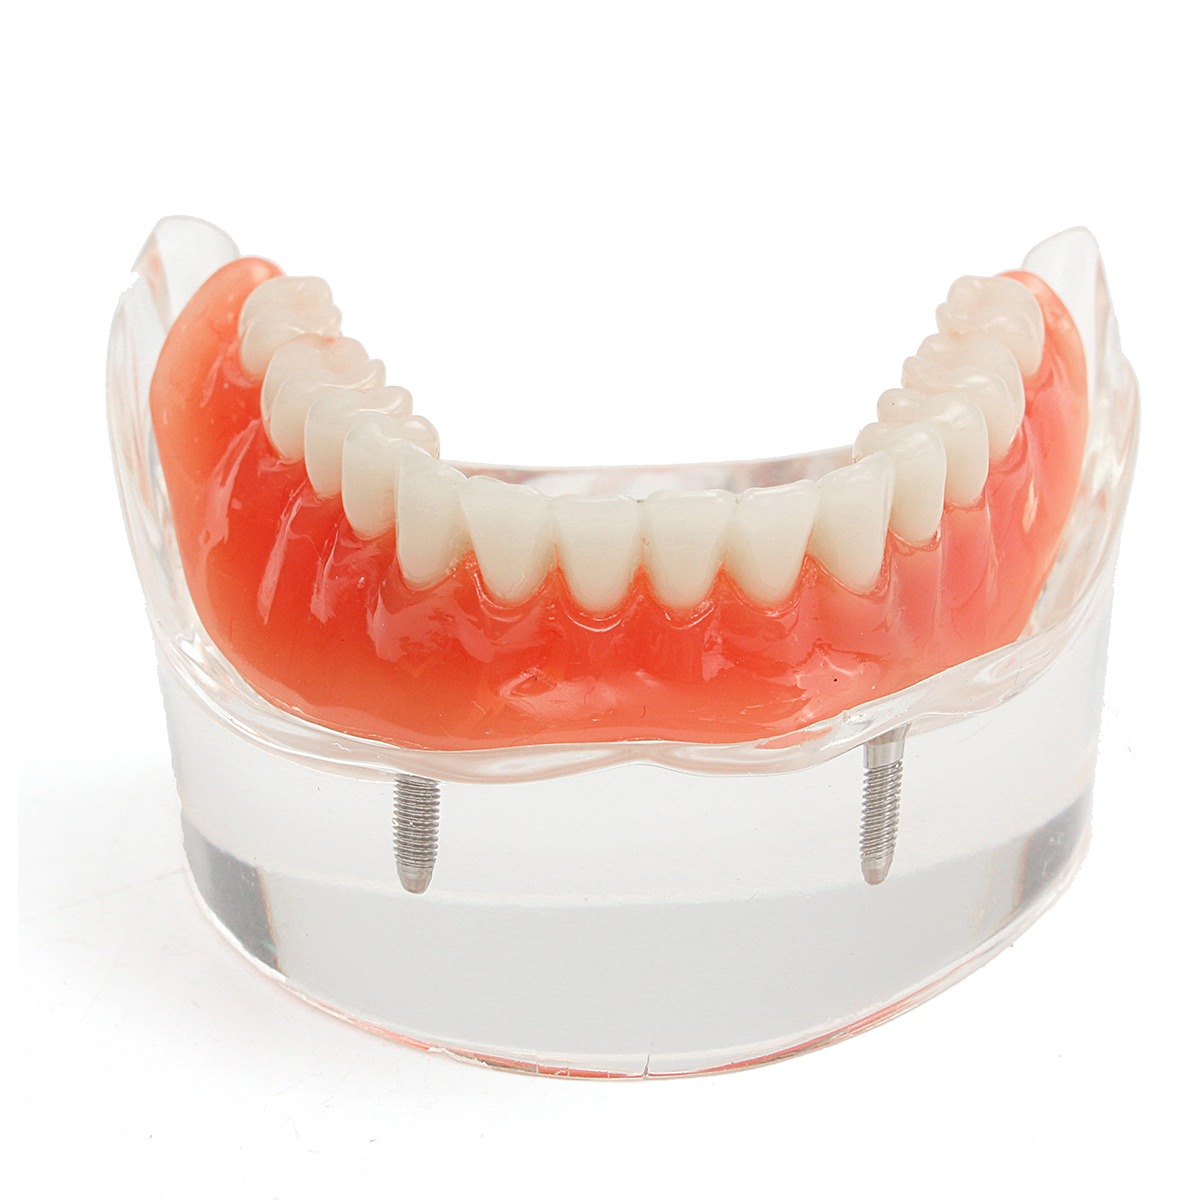 Lower Teeth Model Mandibular With Implant Restoration Tooth Dental Overdenture Interior Mandibular for Medical Teaching Study advanced simulation model of mandibular tissue decomposition simulation model of mandibular structures